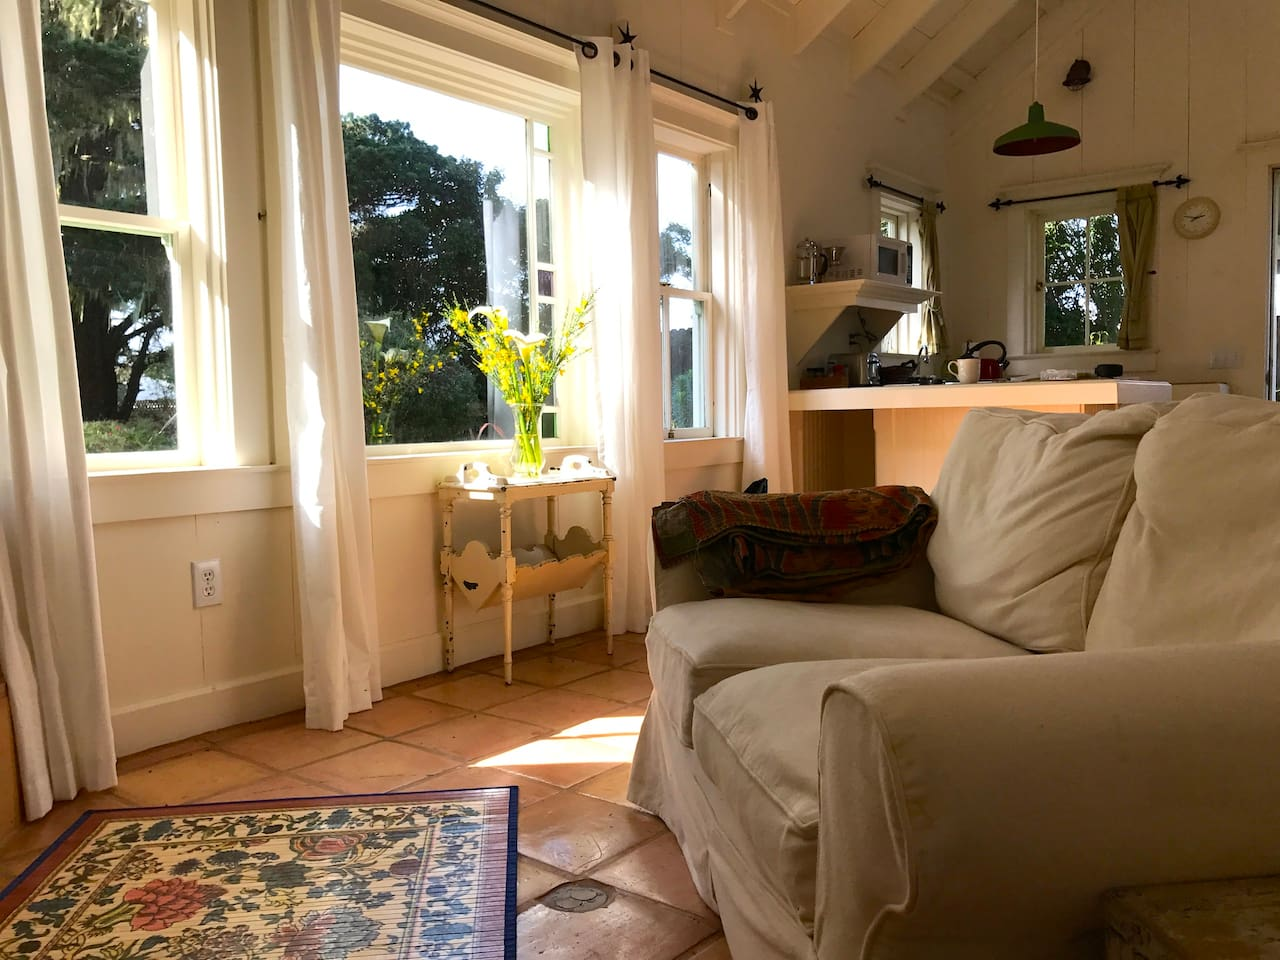 Sunlight pours through the west facing windows in the afternoon.